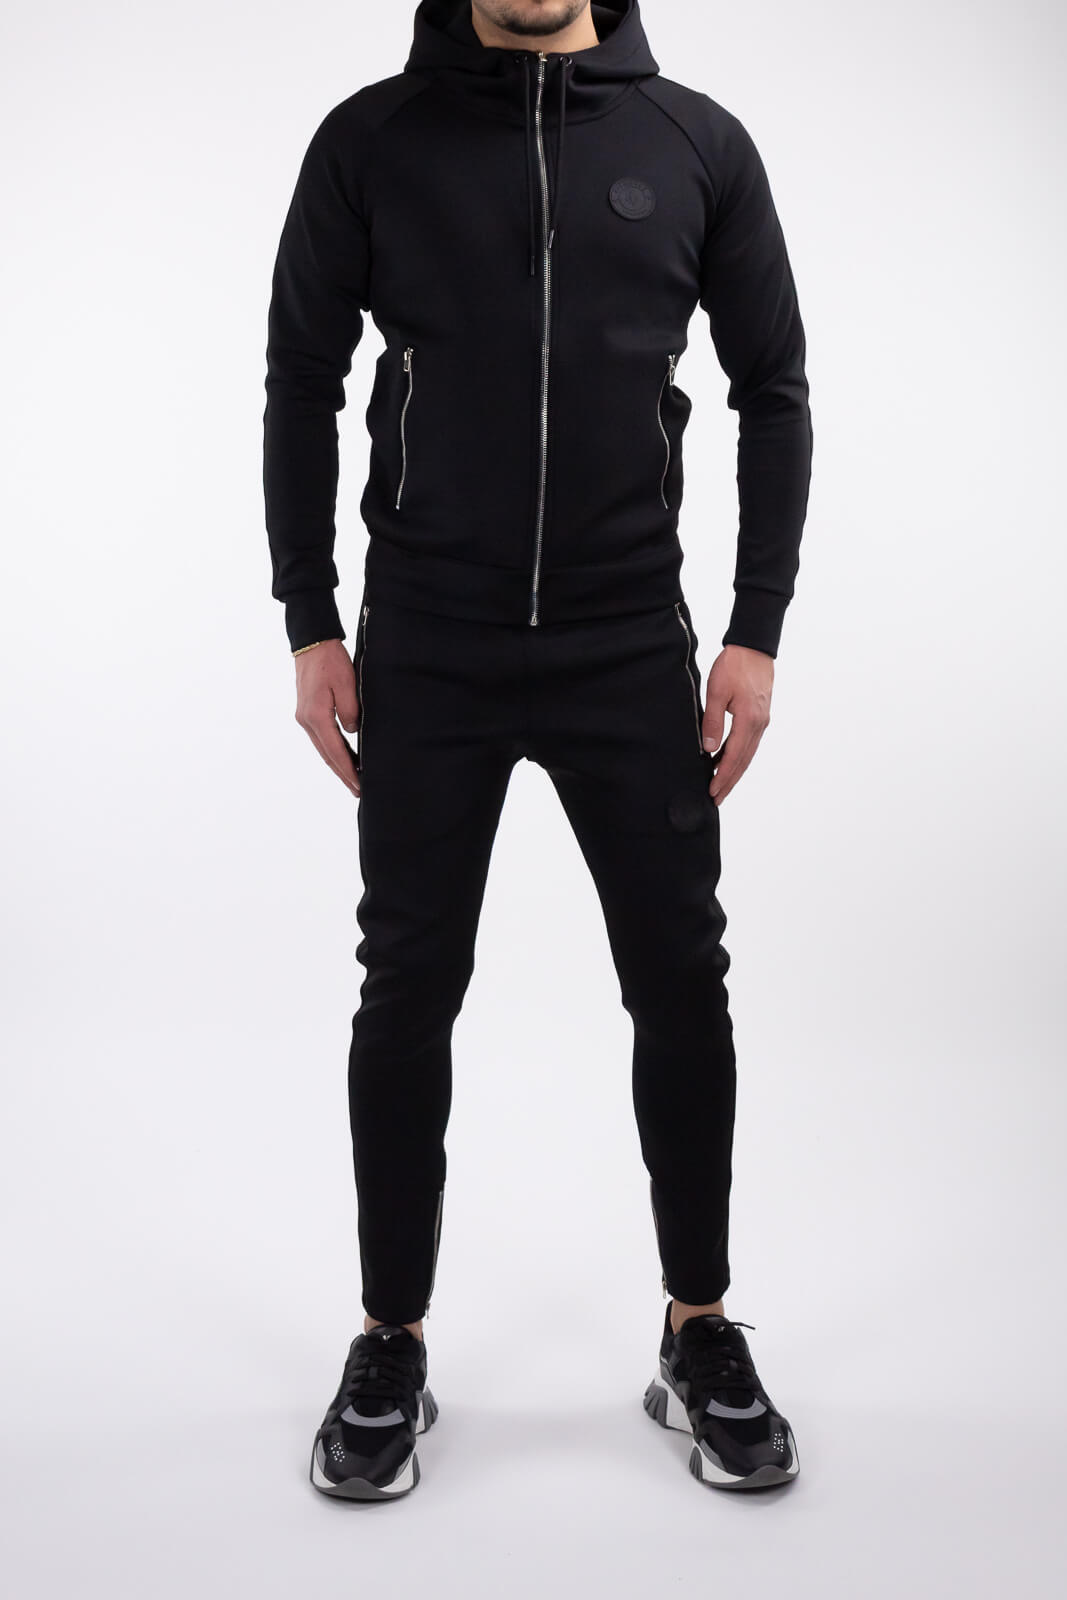 Richesse Generalissimo Tracksuit-05